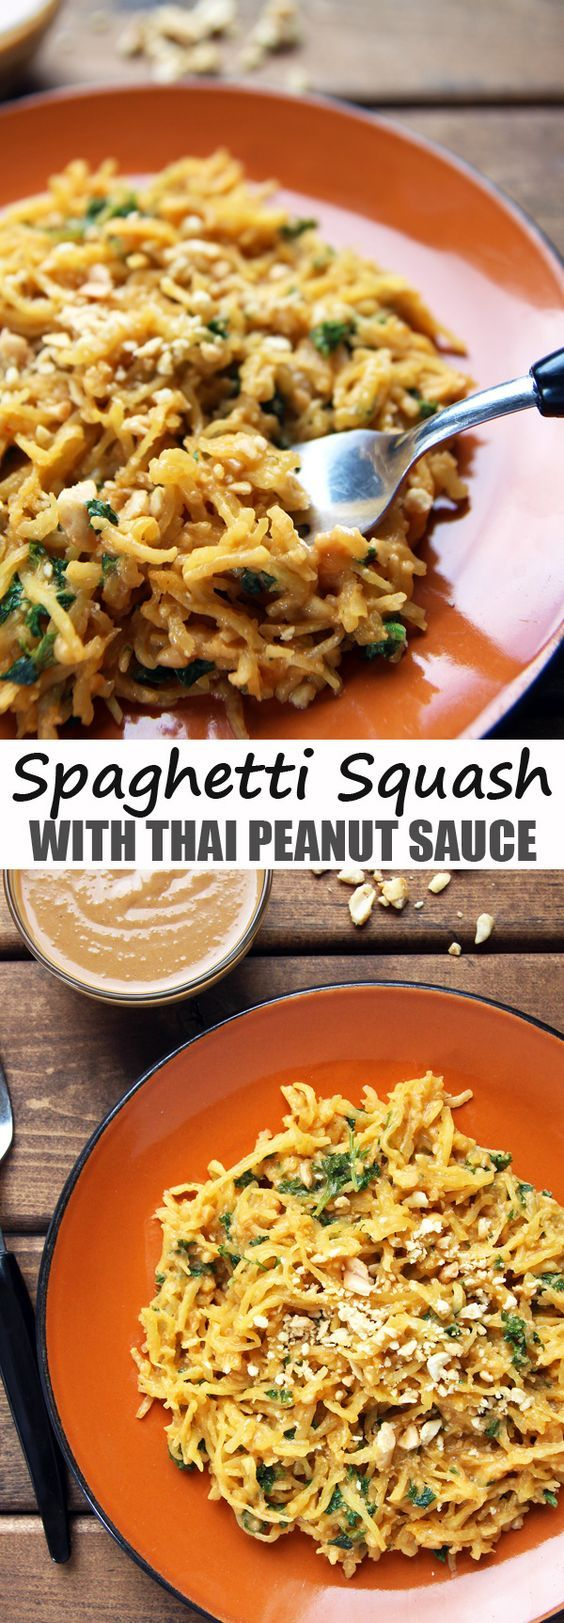 Use Spaghetti Squash for a gluten-free and low carb 'noodle' dish that is inspir…